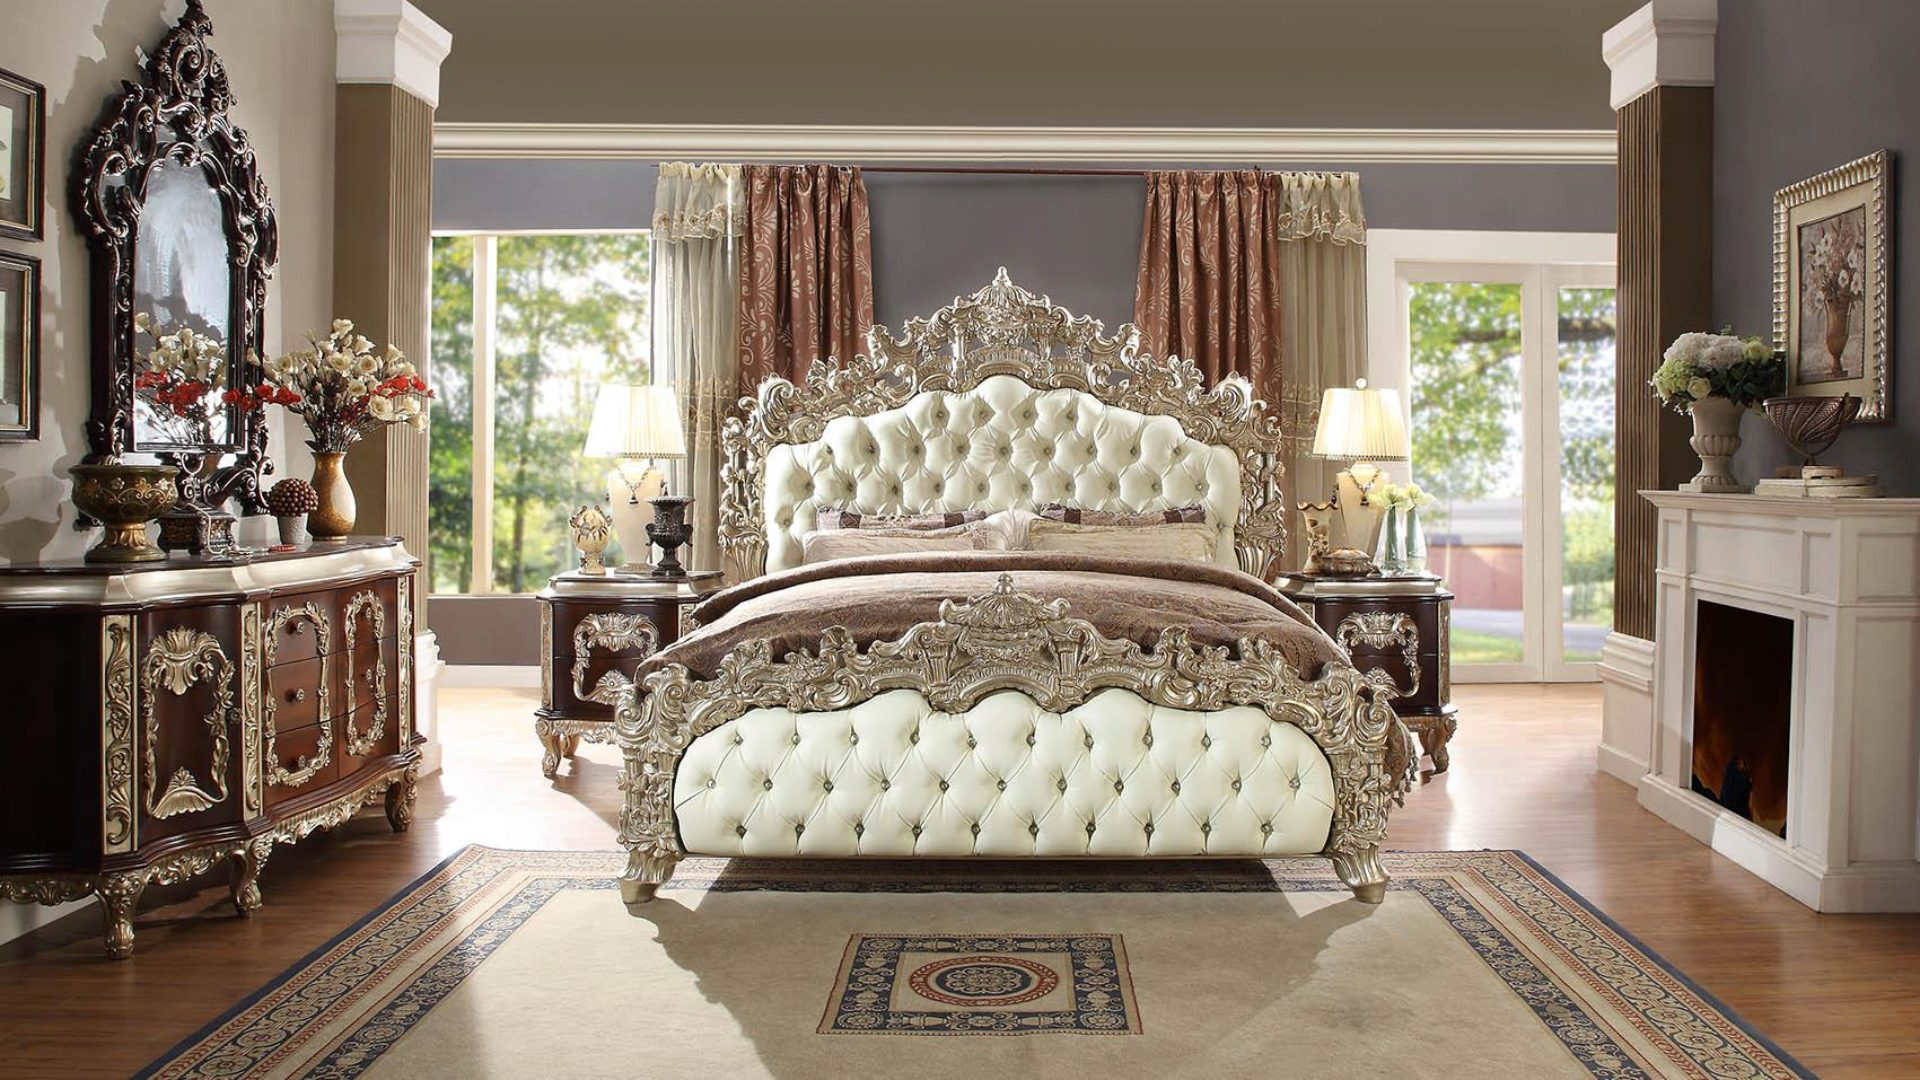 Antique White Silver Cal King Bedroom Set 5pcs Traditional Homey Design Hd 8017 Hd 8017 Bset5 Ck